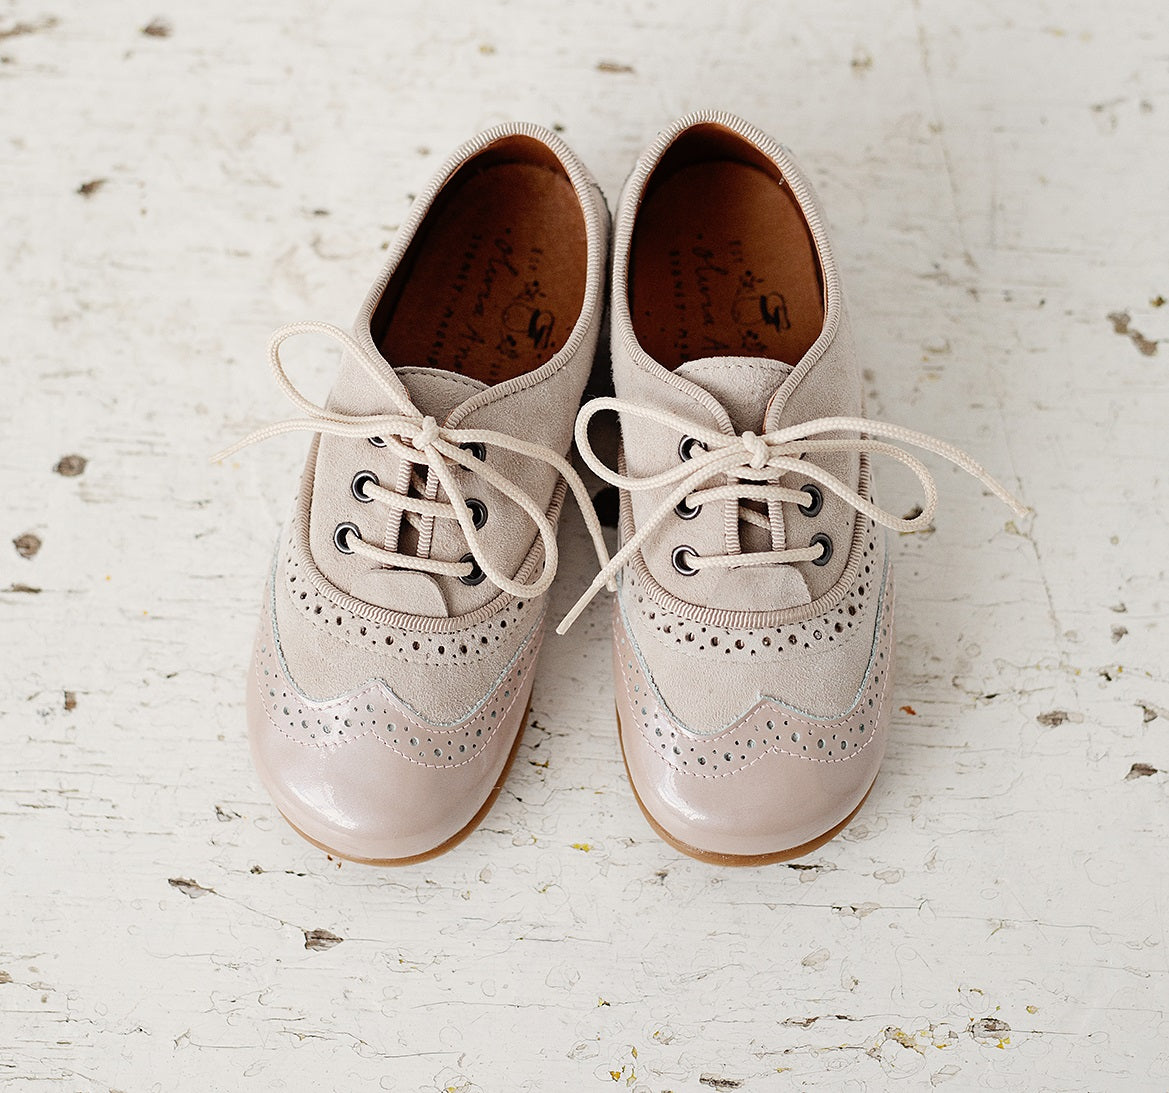 Beautiful smart-casual style lace-up brogue shoes. Made with an adorable combination of Cream Patent Leather and Grey Suede of the highest quality. Olivia Ann Shoes.